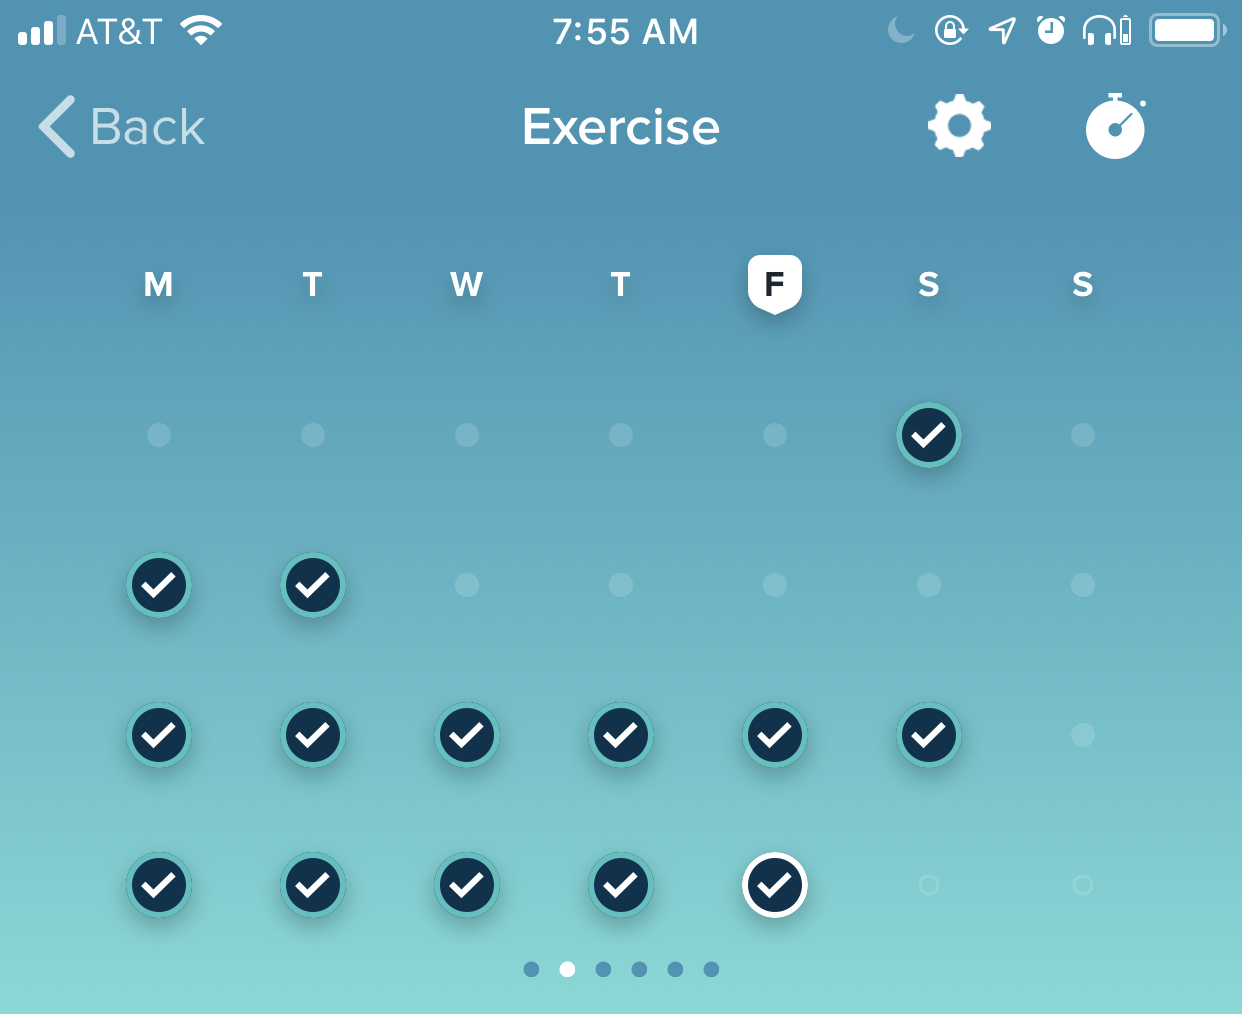 Two weeks of exercise Fitbit screenshot